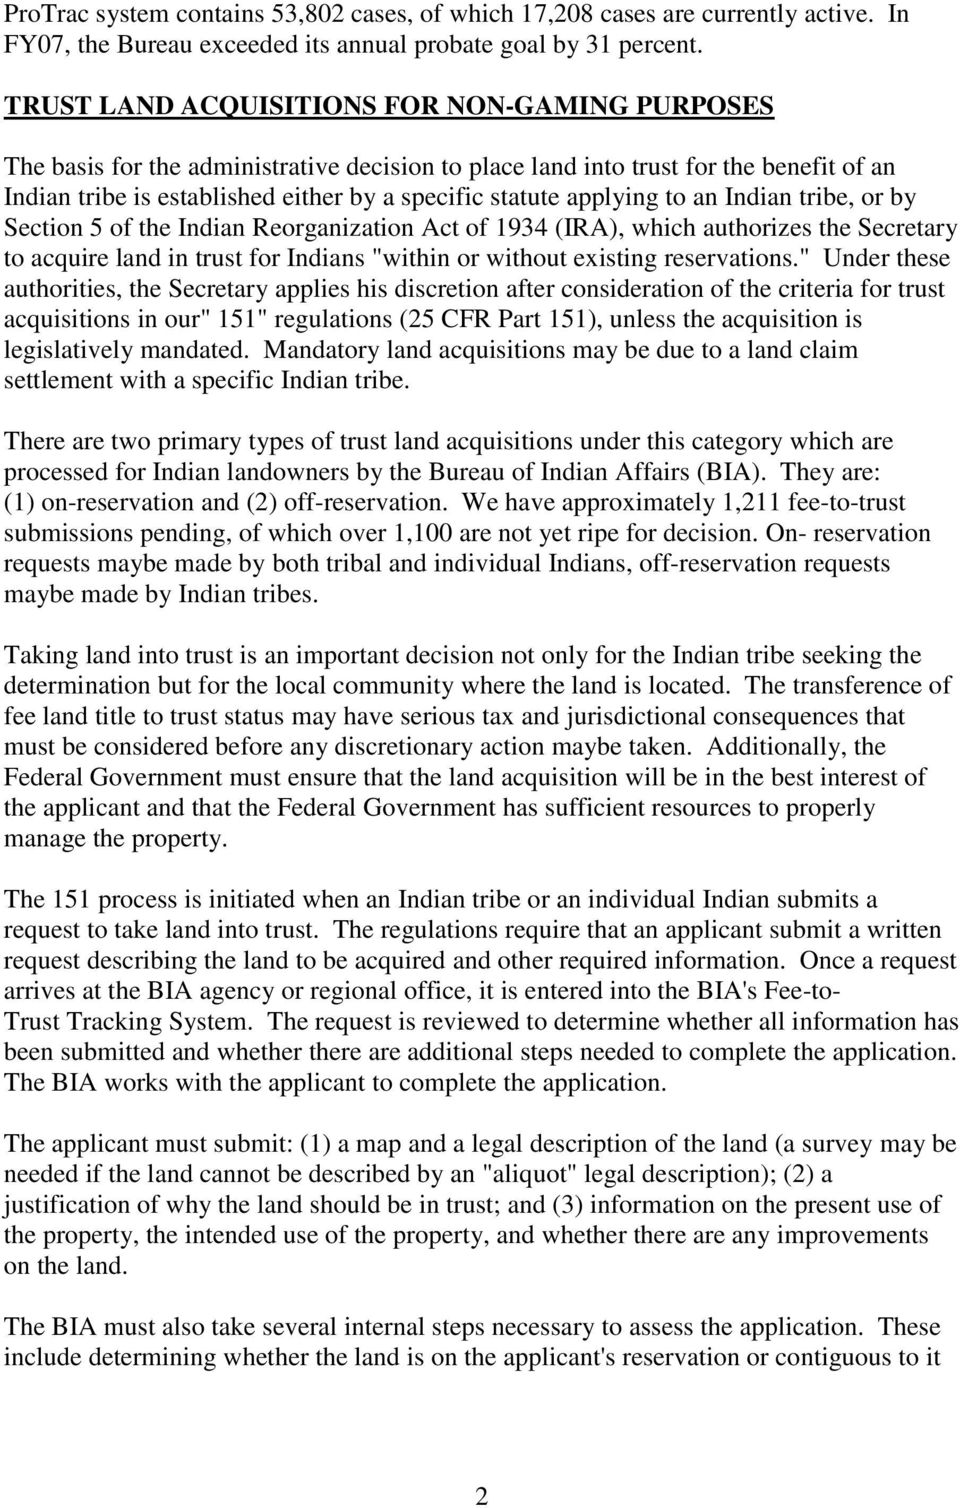 "applying to an Indian tribe, or by Section 5 of the Indian Reorganization Act of 1934 (IRA), which authorizes the Secretary to acquire land in trust for Indians ""within or without existing"